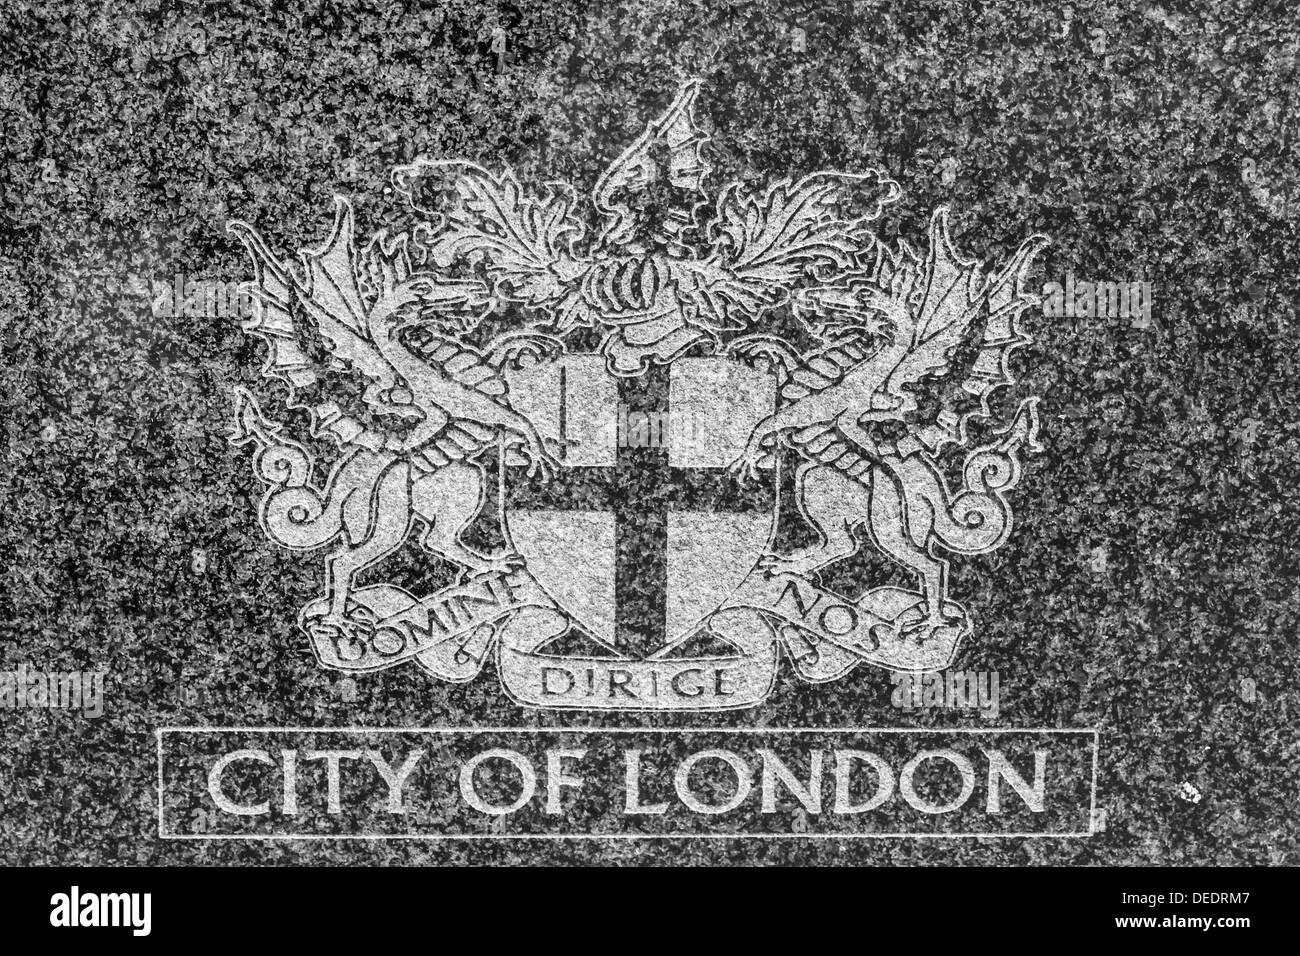 City of London Coat of Arms Carved in Stone - Stock Image